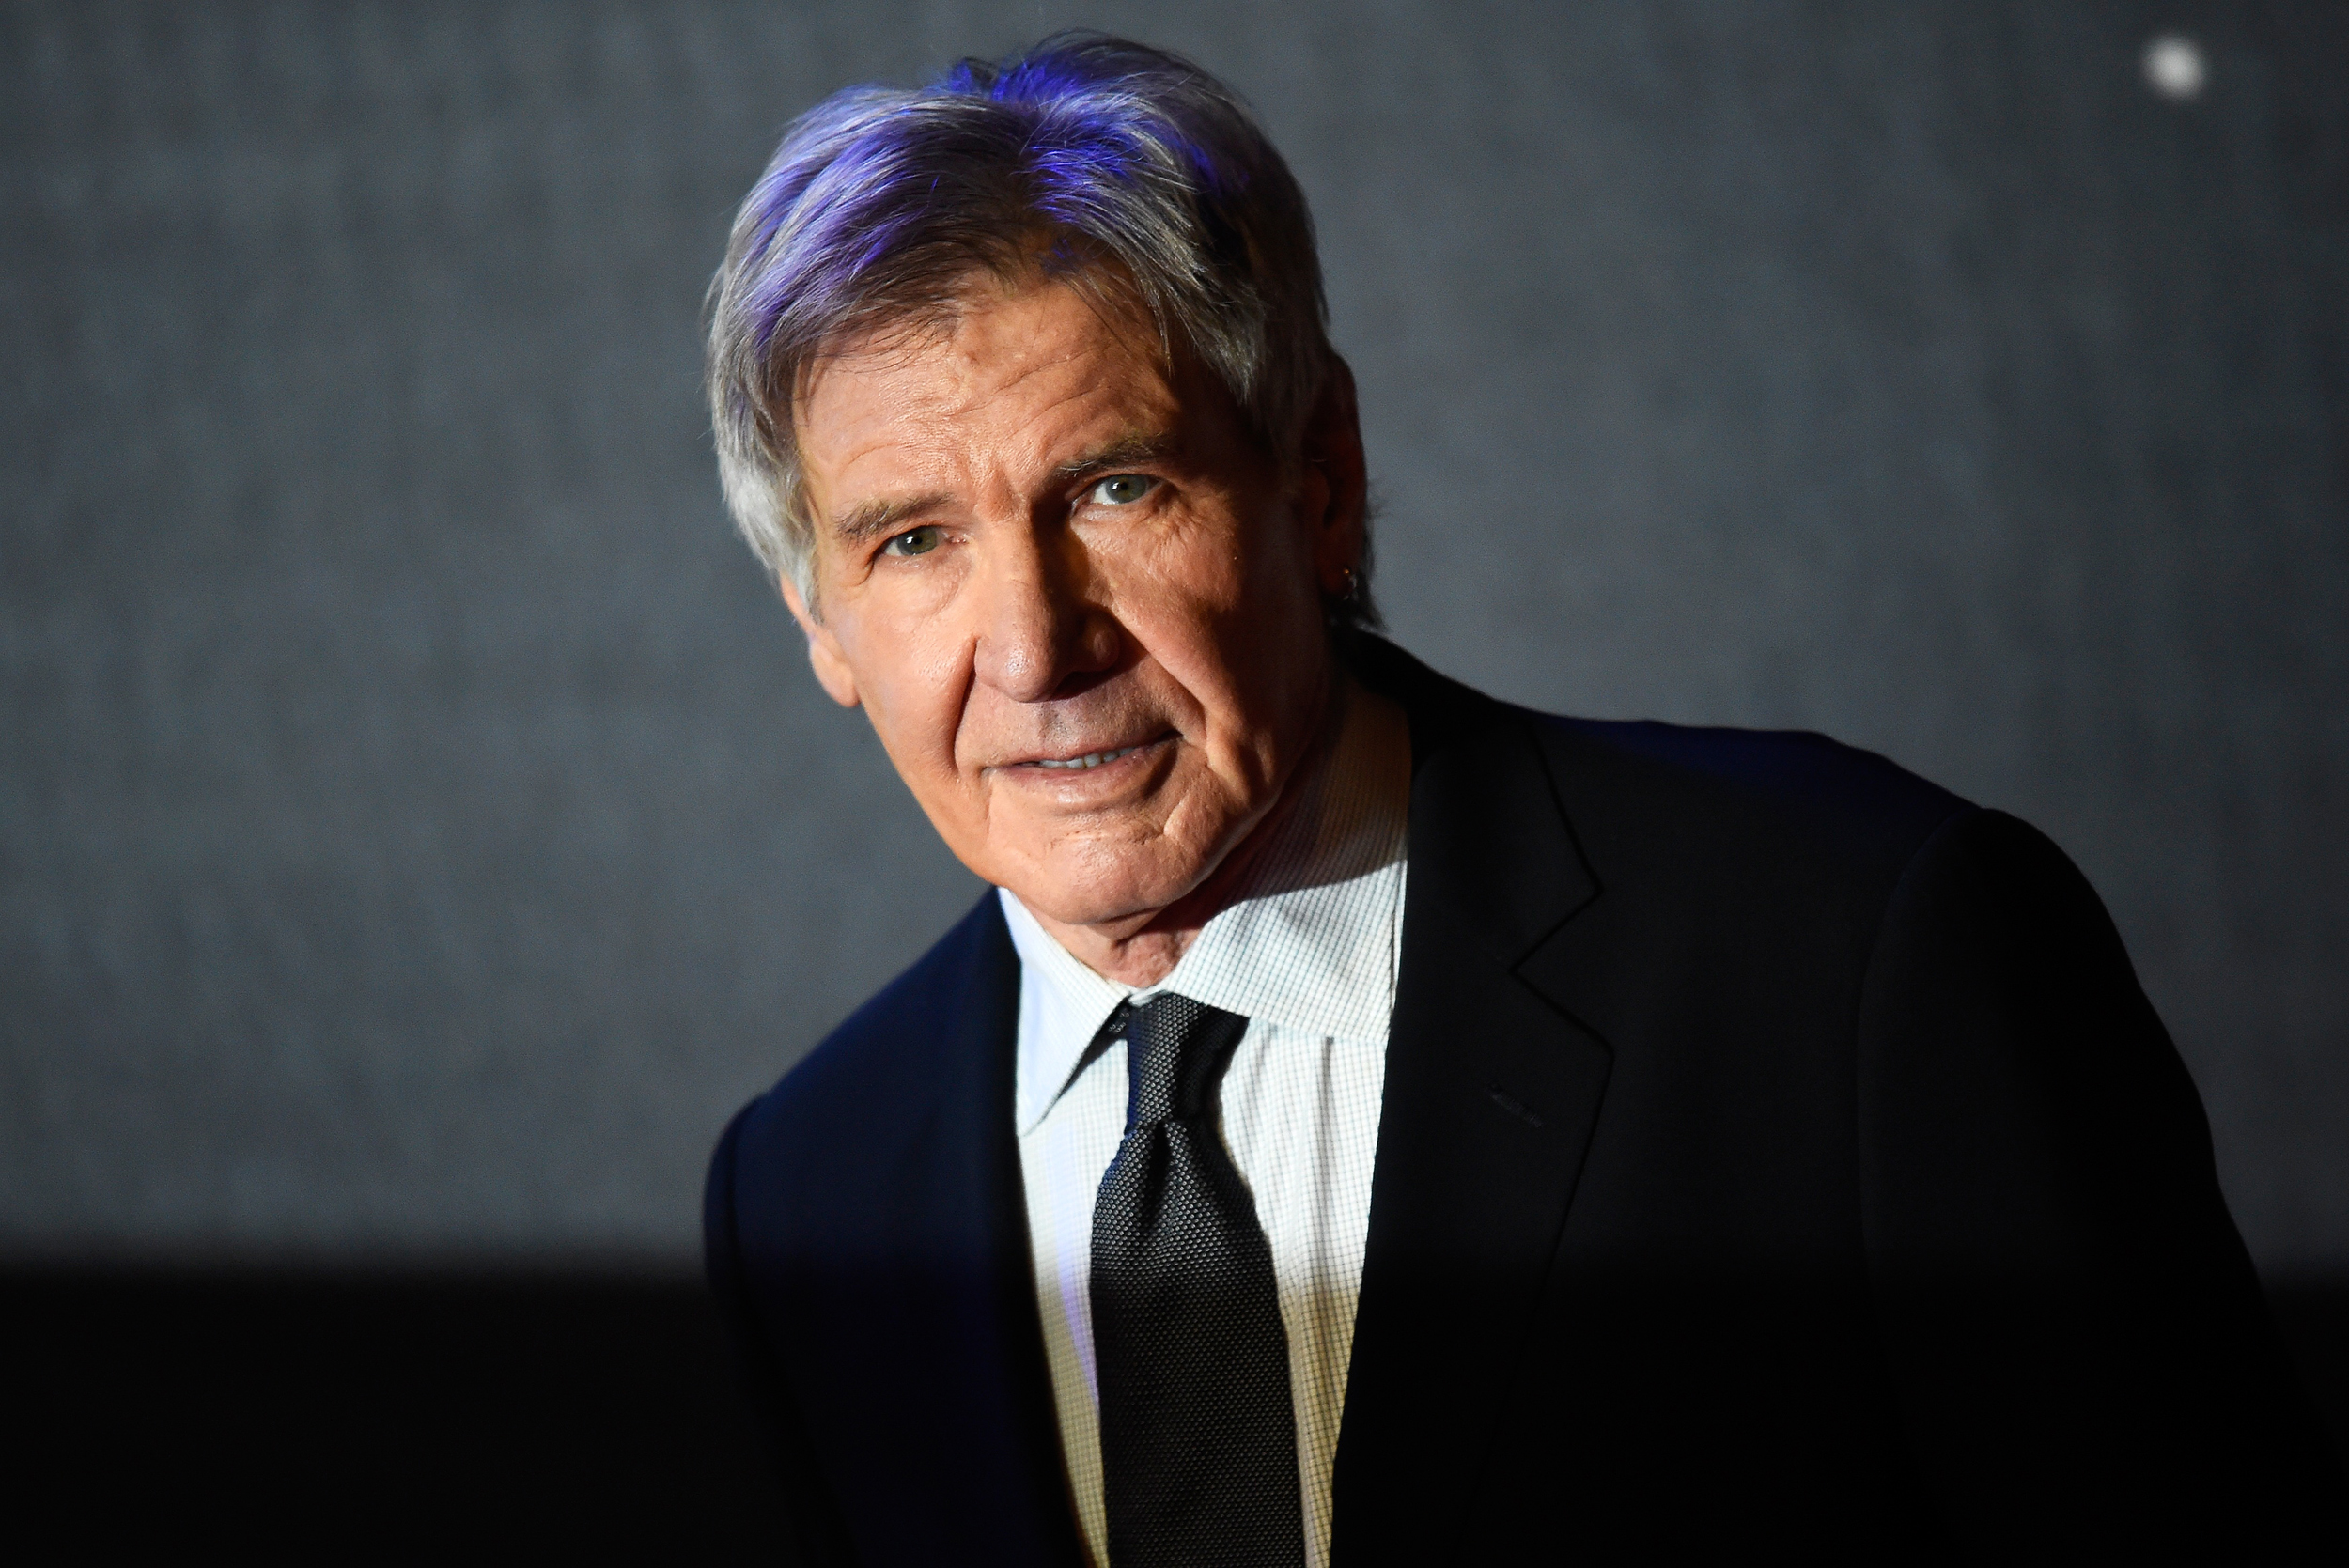 Harrison Ford in incident with passenger plane at California airport